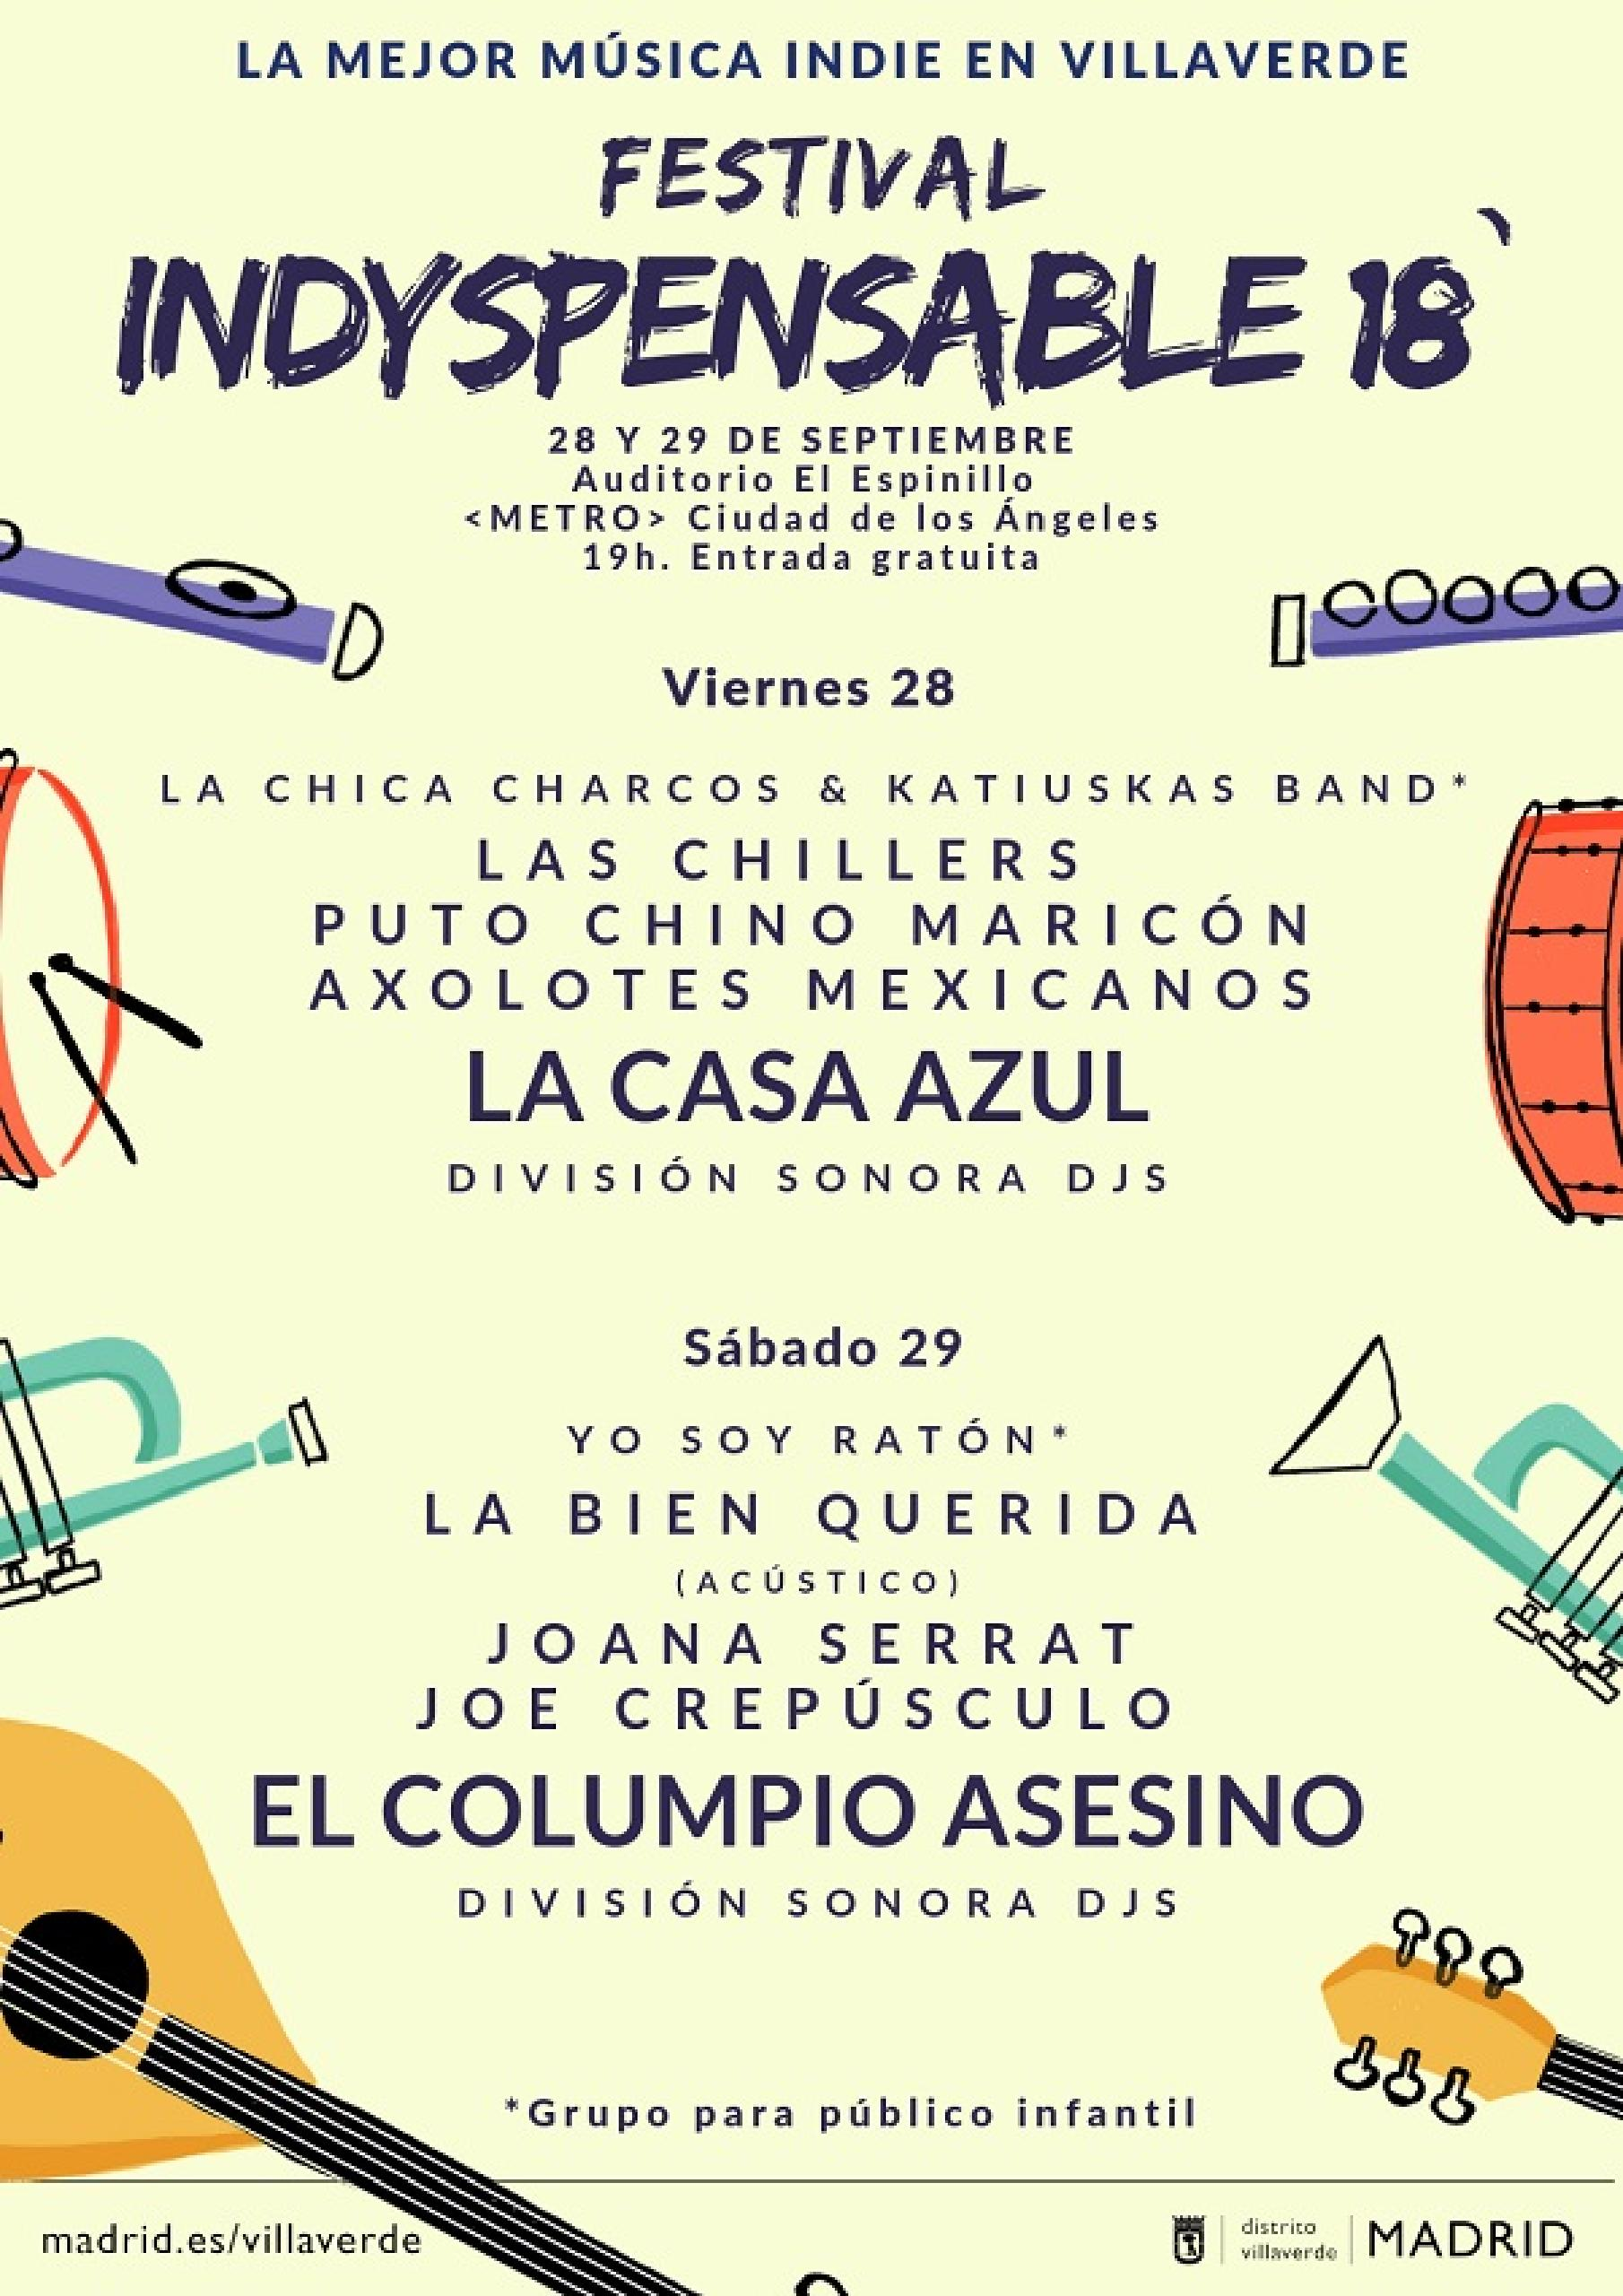 Cartel confirmaciones festival indyspensable 18